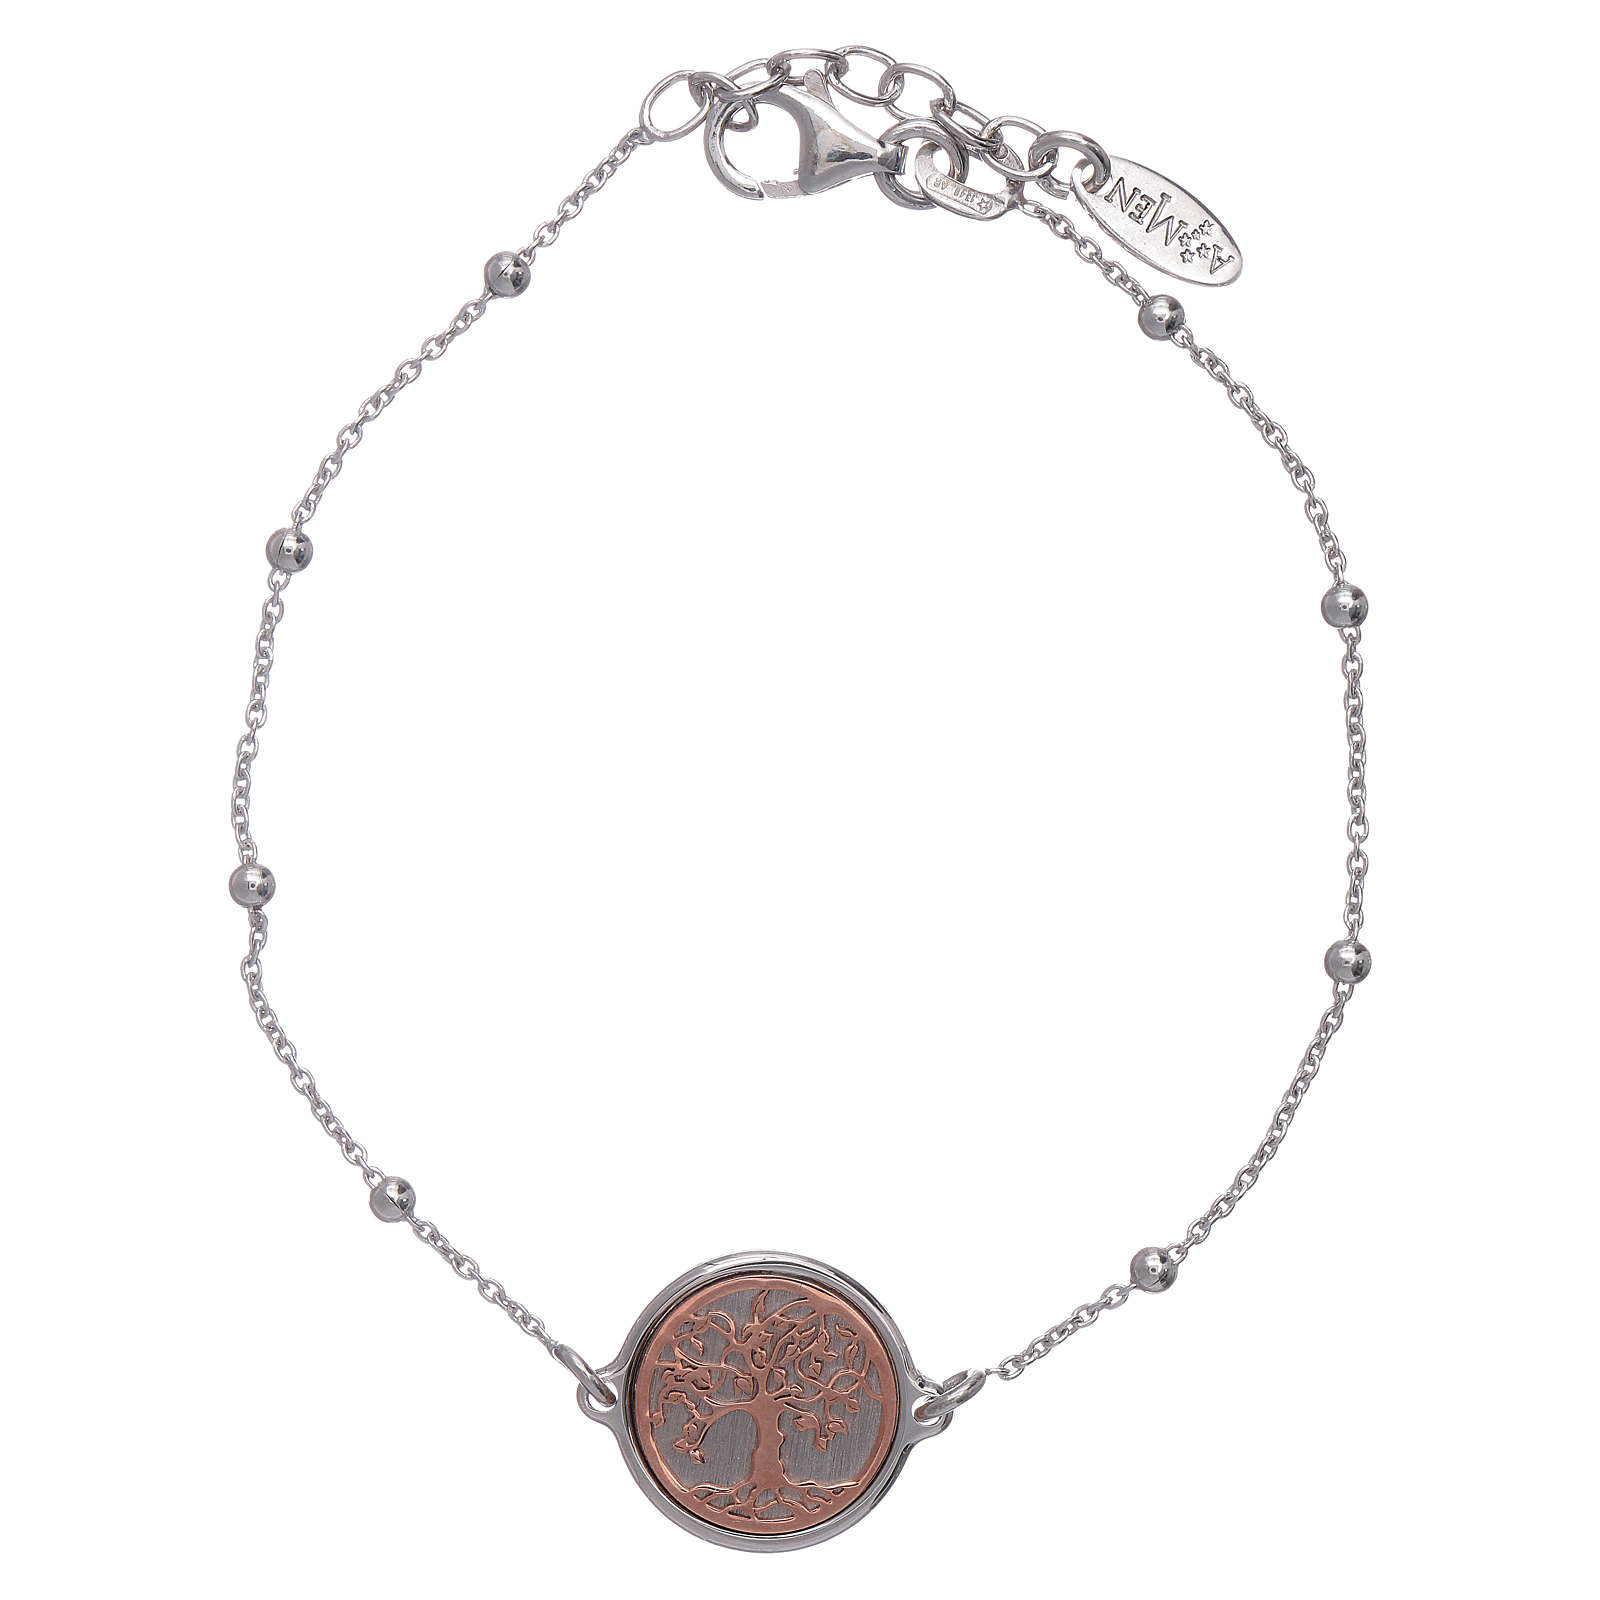 AMEN Tree of Life bracelet 925 sterling silver rhodium plated and rosè 4